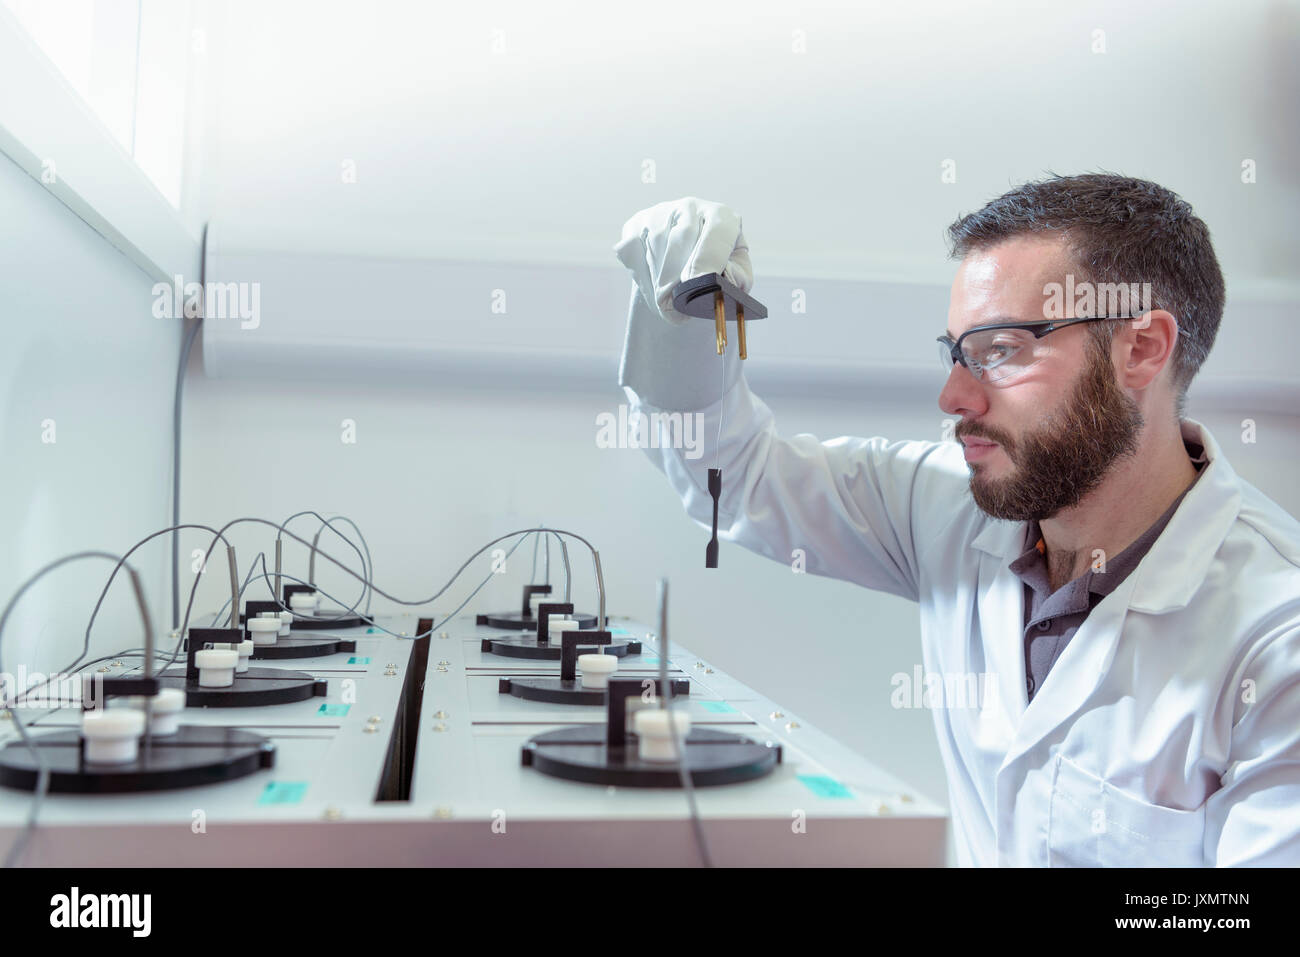 Scientist age testing electrical cable in electrical cable laboratory - Stock Image